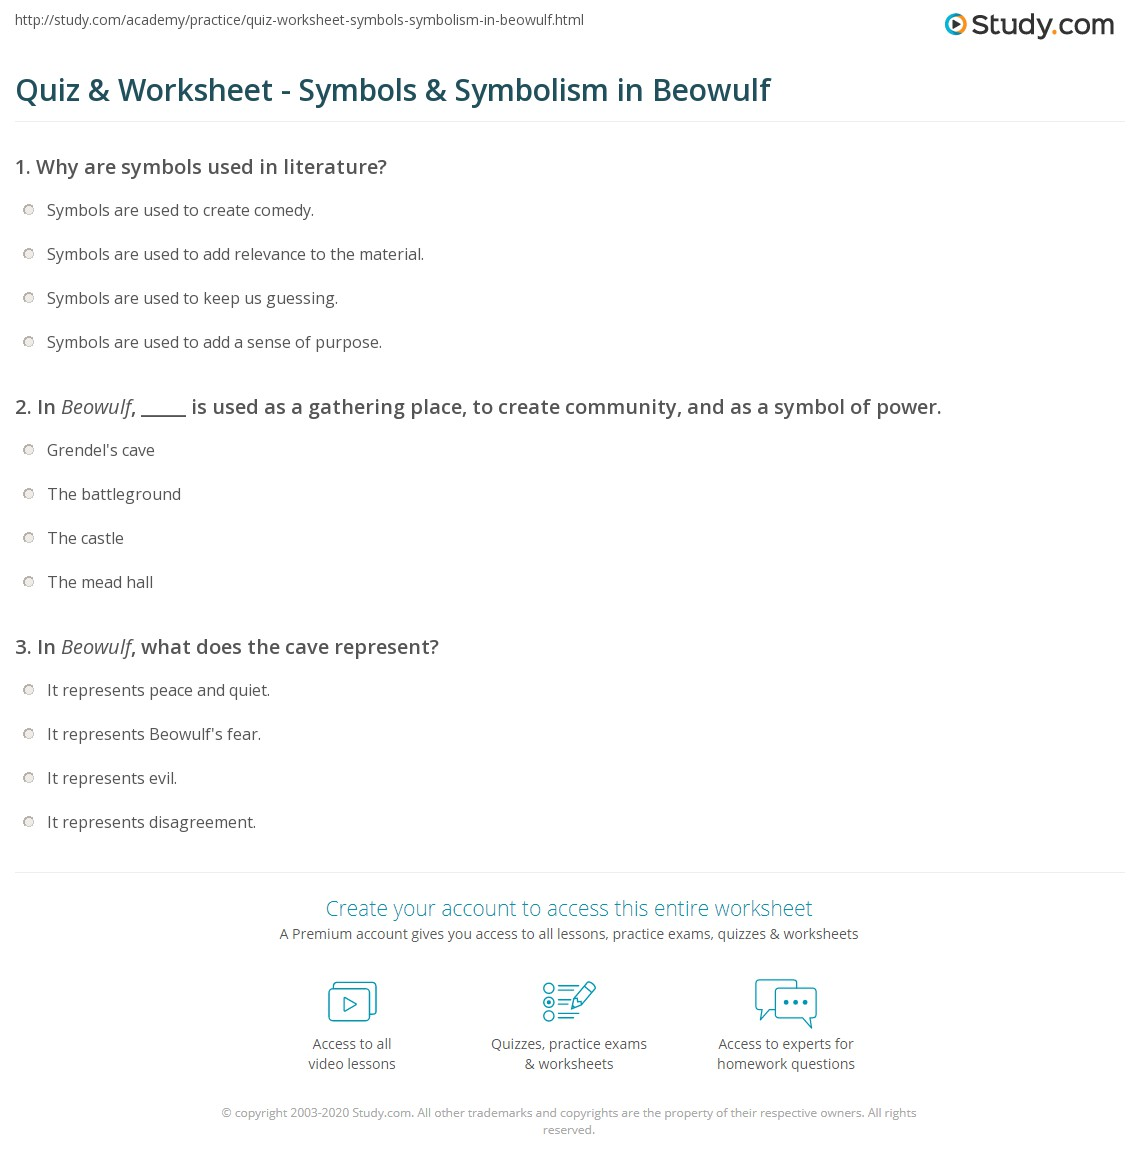 Quiz Worksheet Symbols Symbolism In Beowulf Study